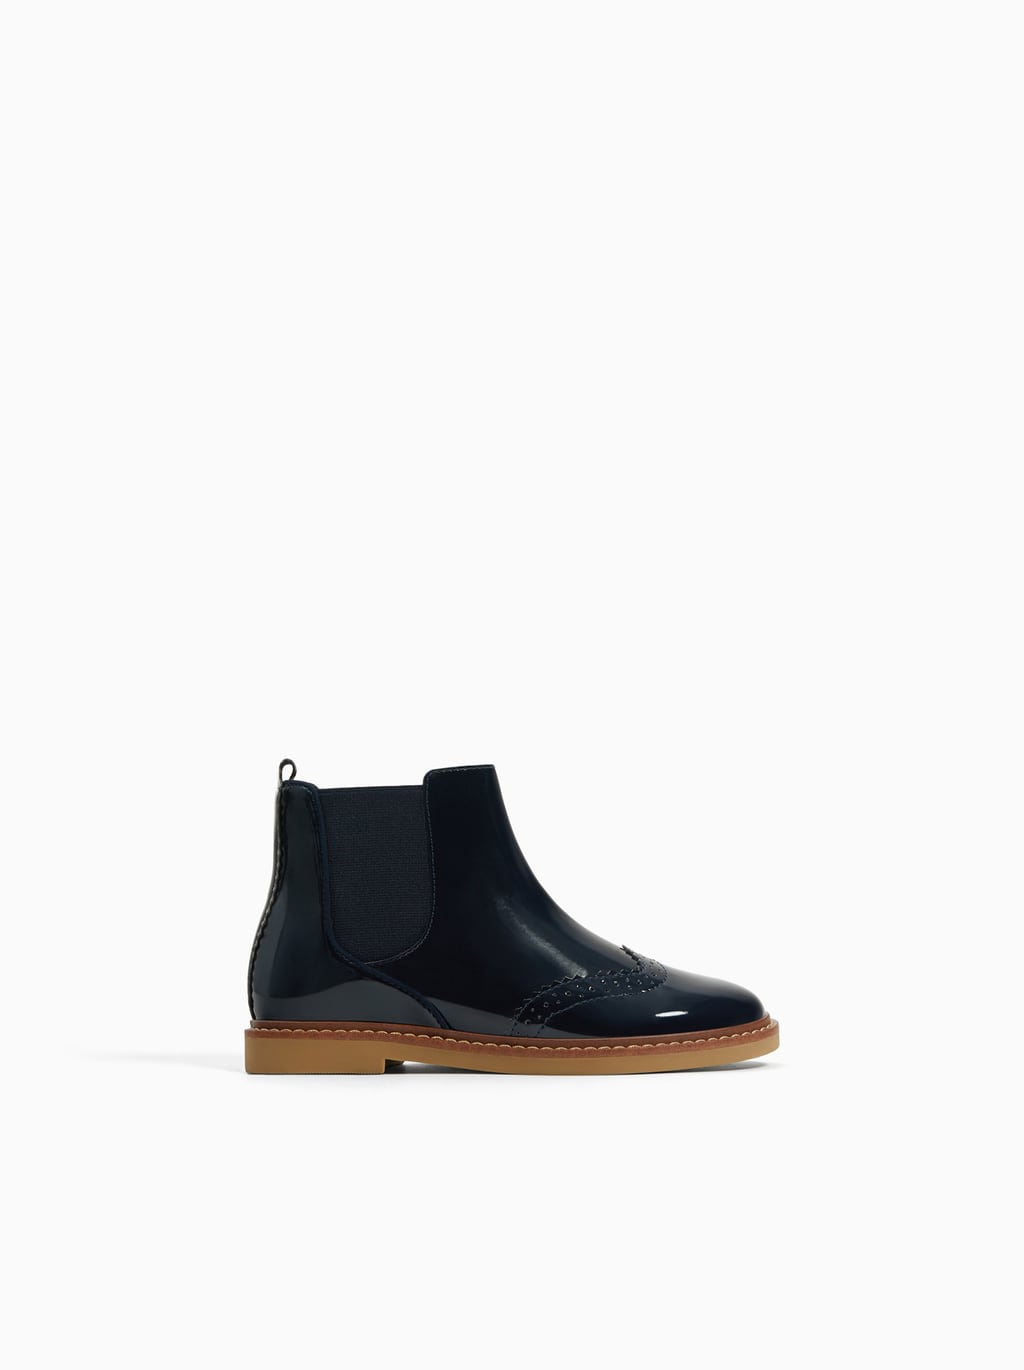 Zara PATENT FINISH WINGTIP ANKLE BOOTS $39